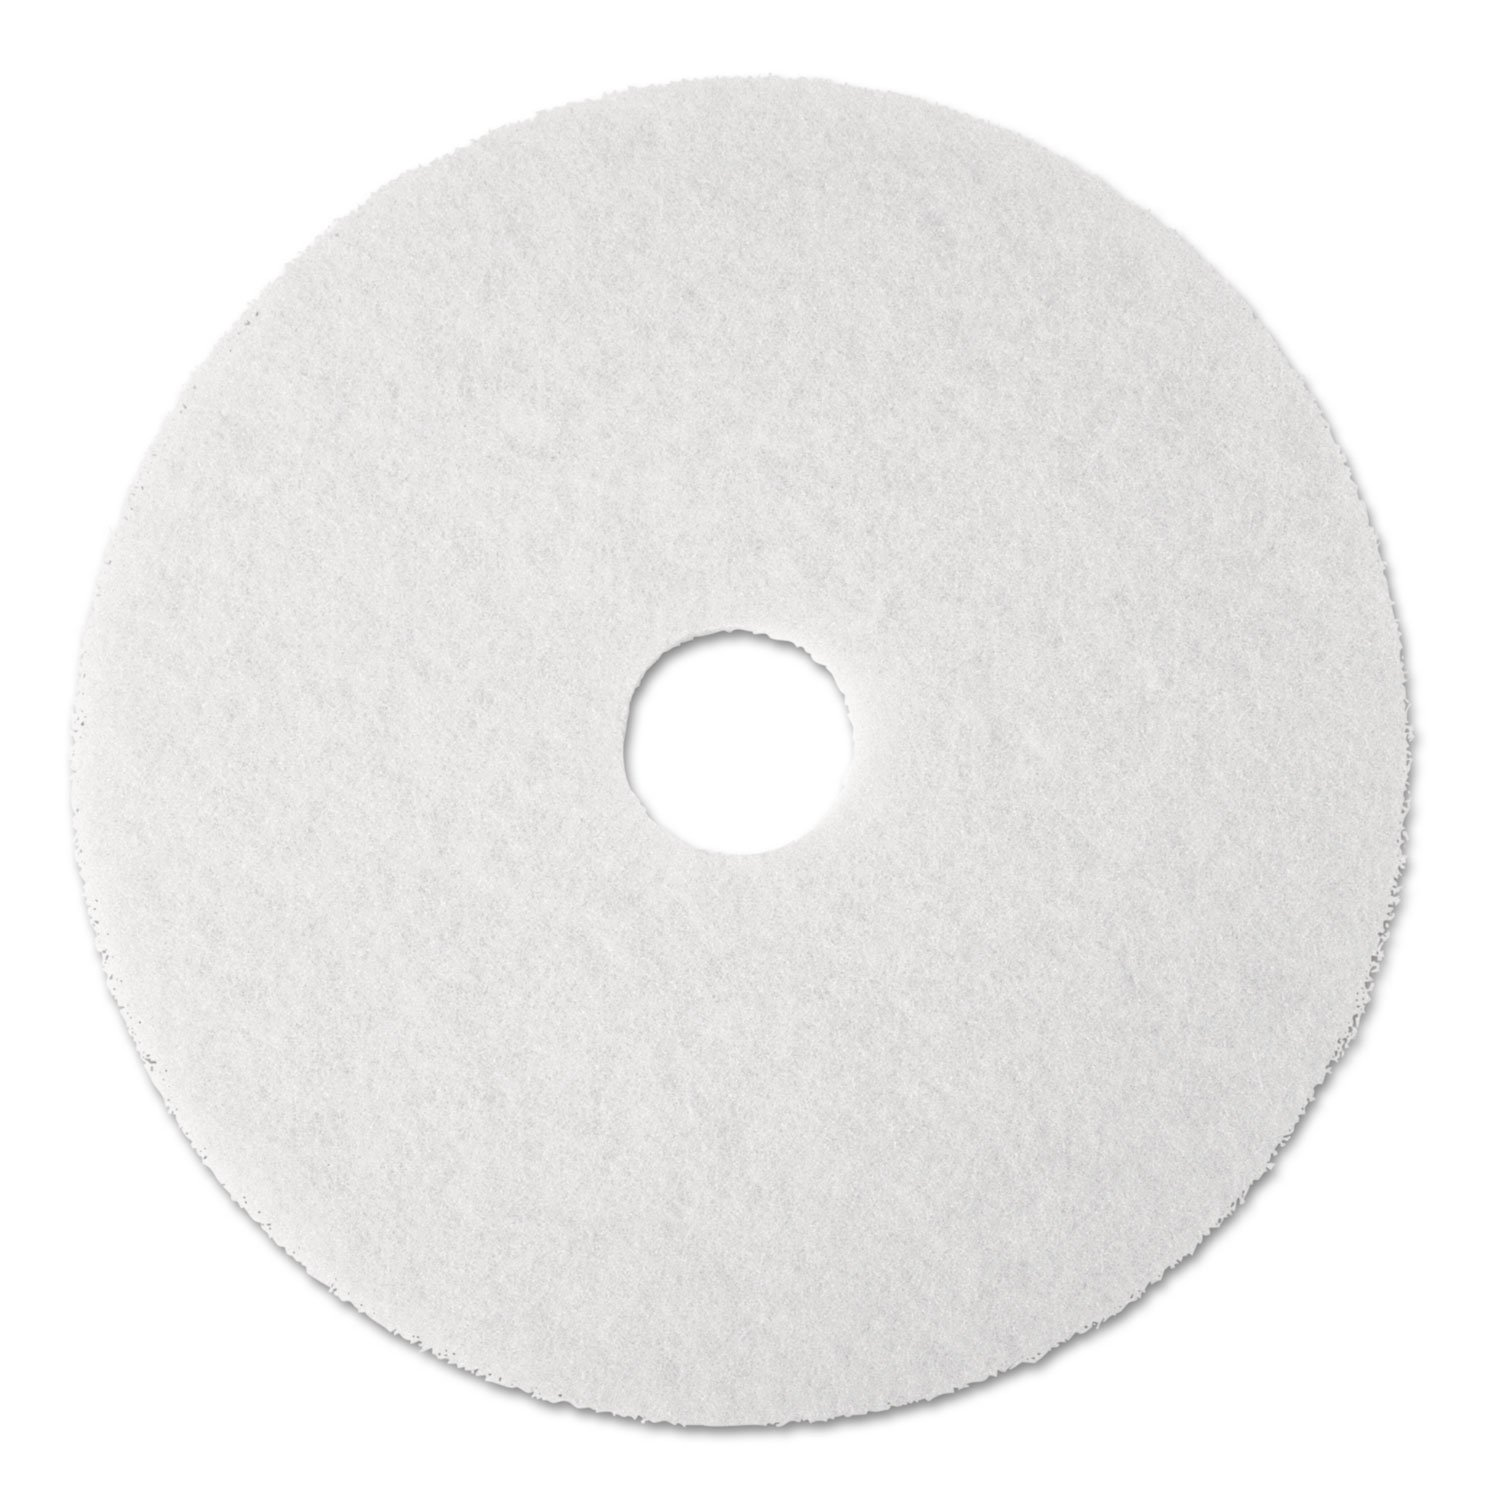 3M - Pad, Super Polish, 13, Wht 13 MMM08477 171360